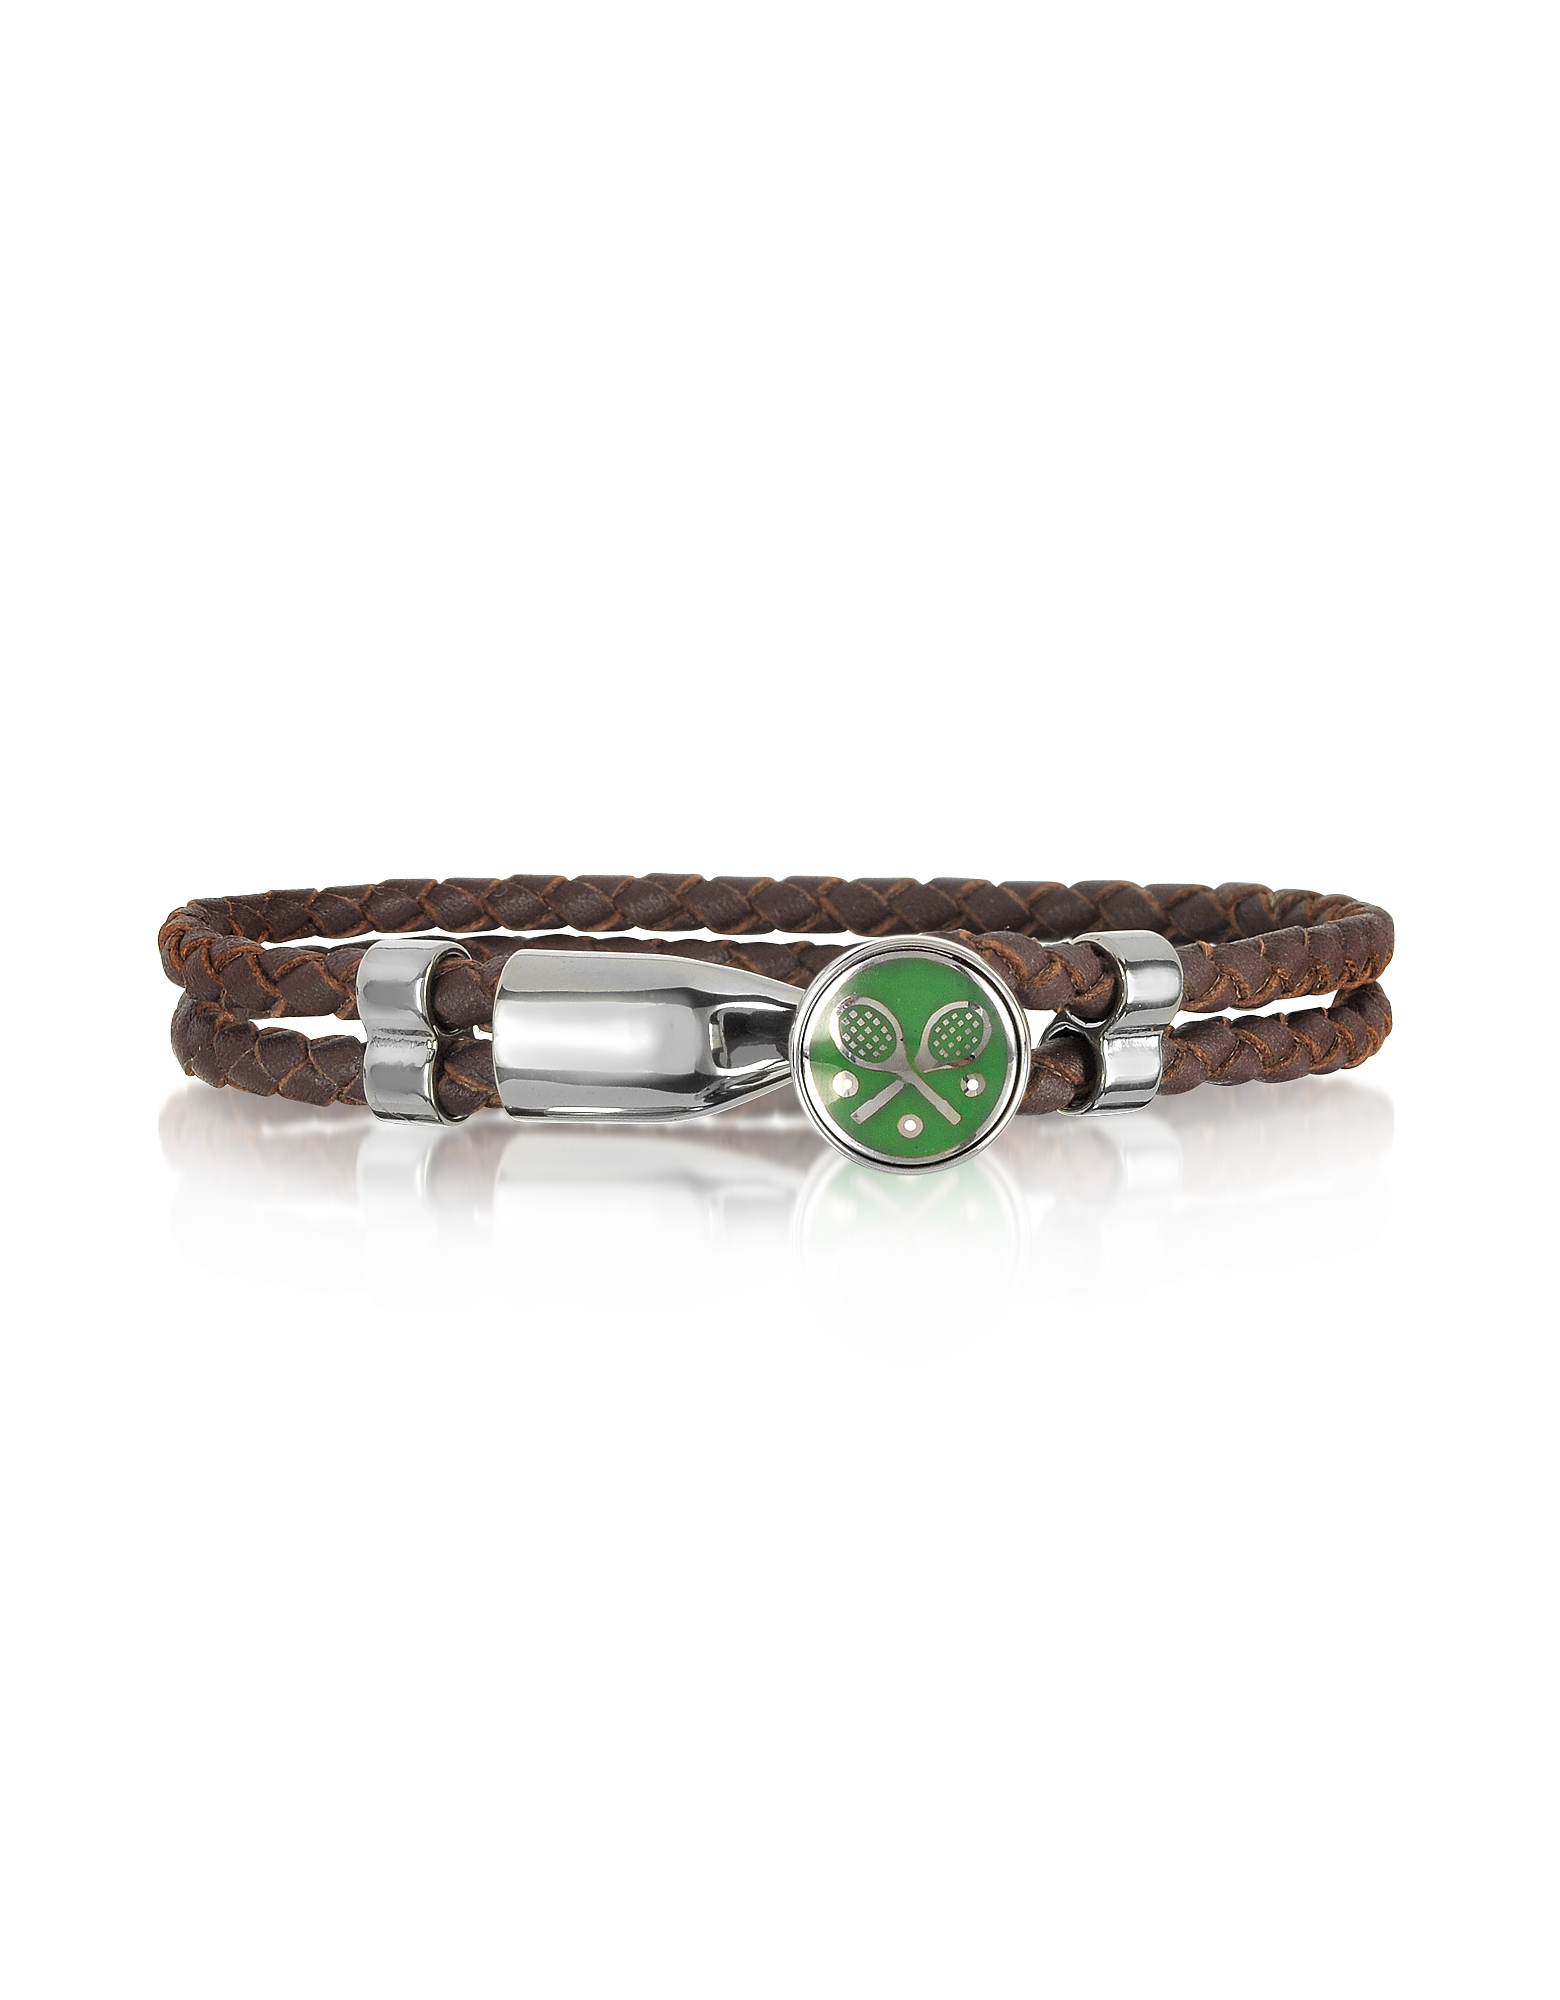 Green Tennis Rackets Metal and Leather Men's Bracelet